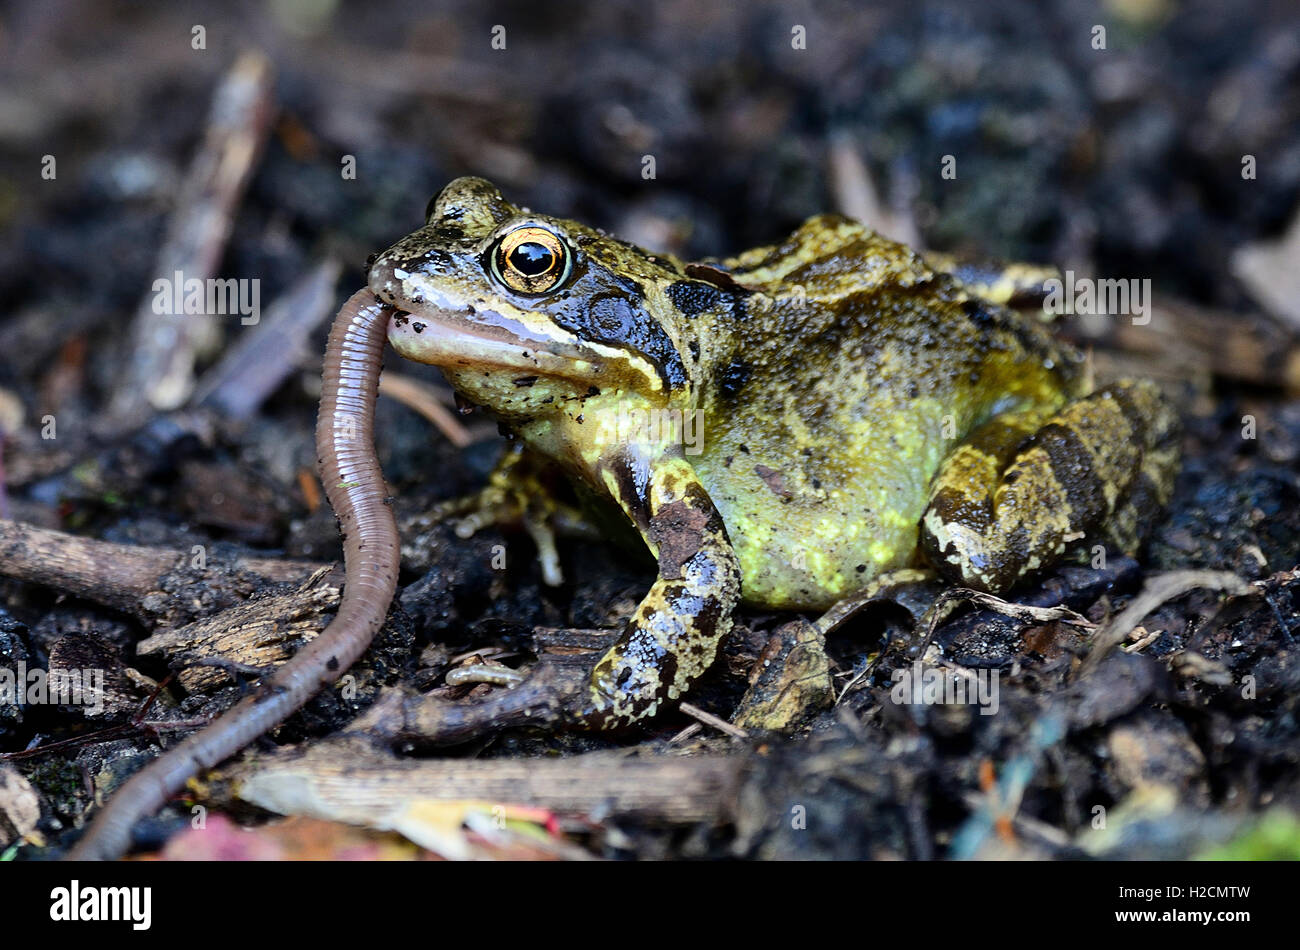 Common frog eating a worm UK - Stock Image